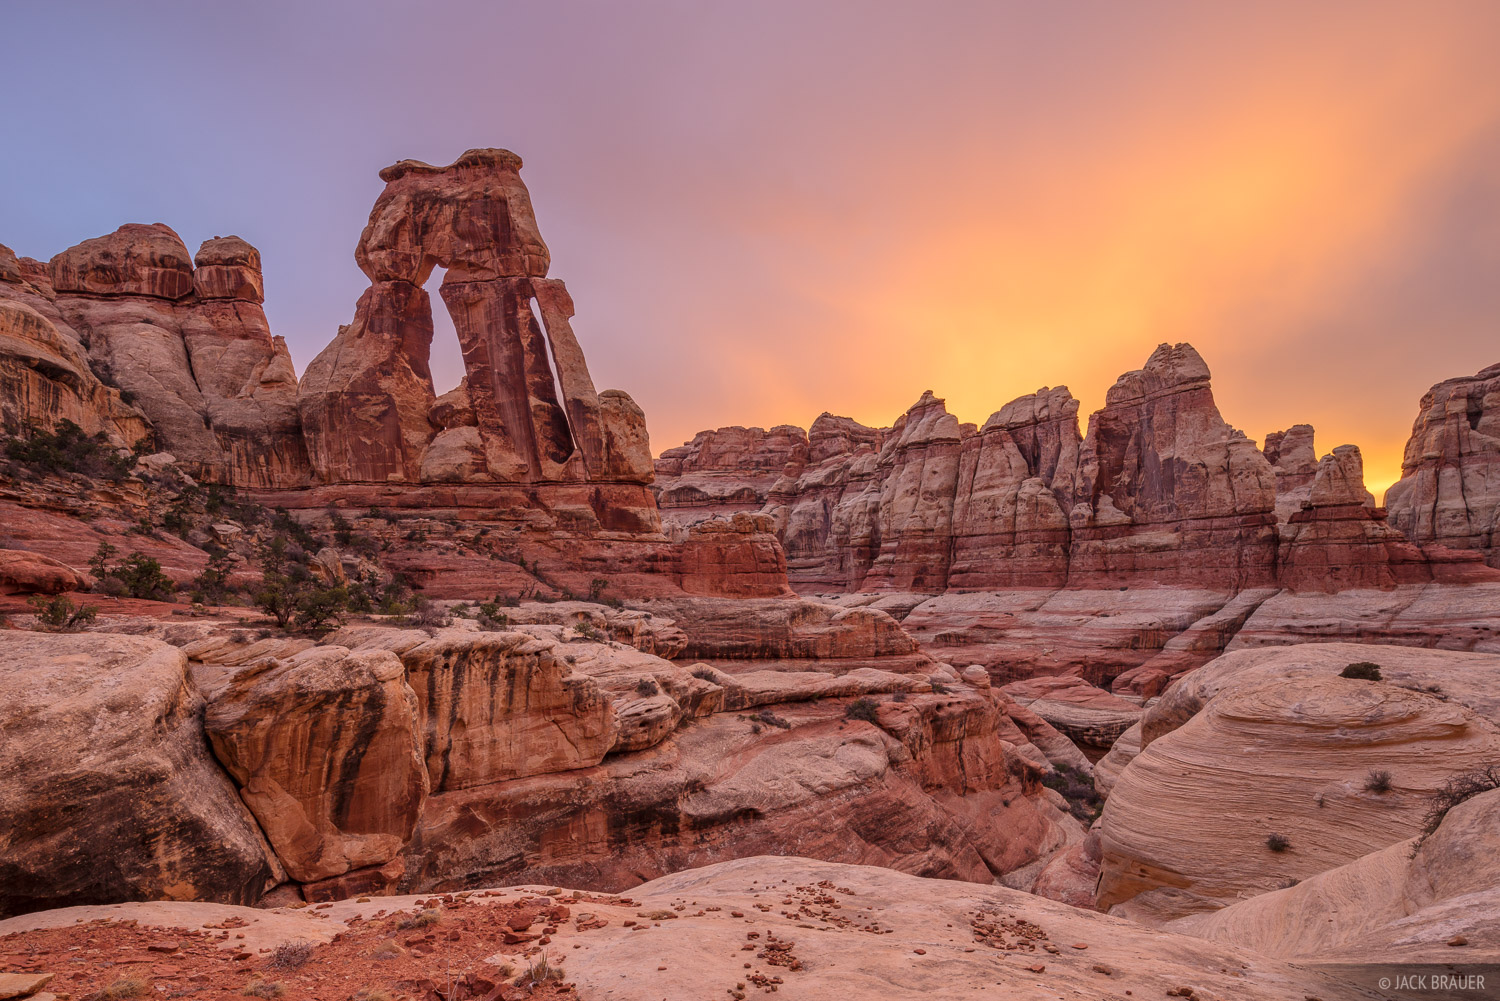 Canyonlands National Park, Needles District, Utah, Elephant Canyon, Druid Arch, photo